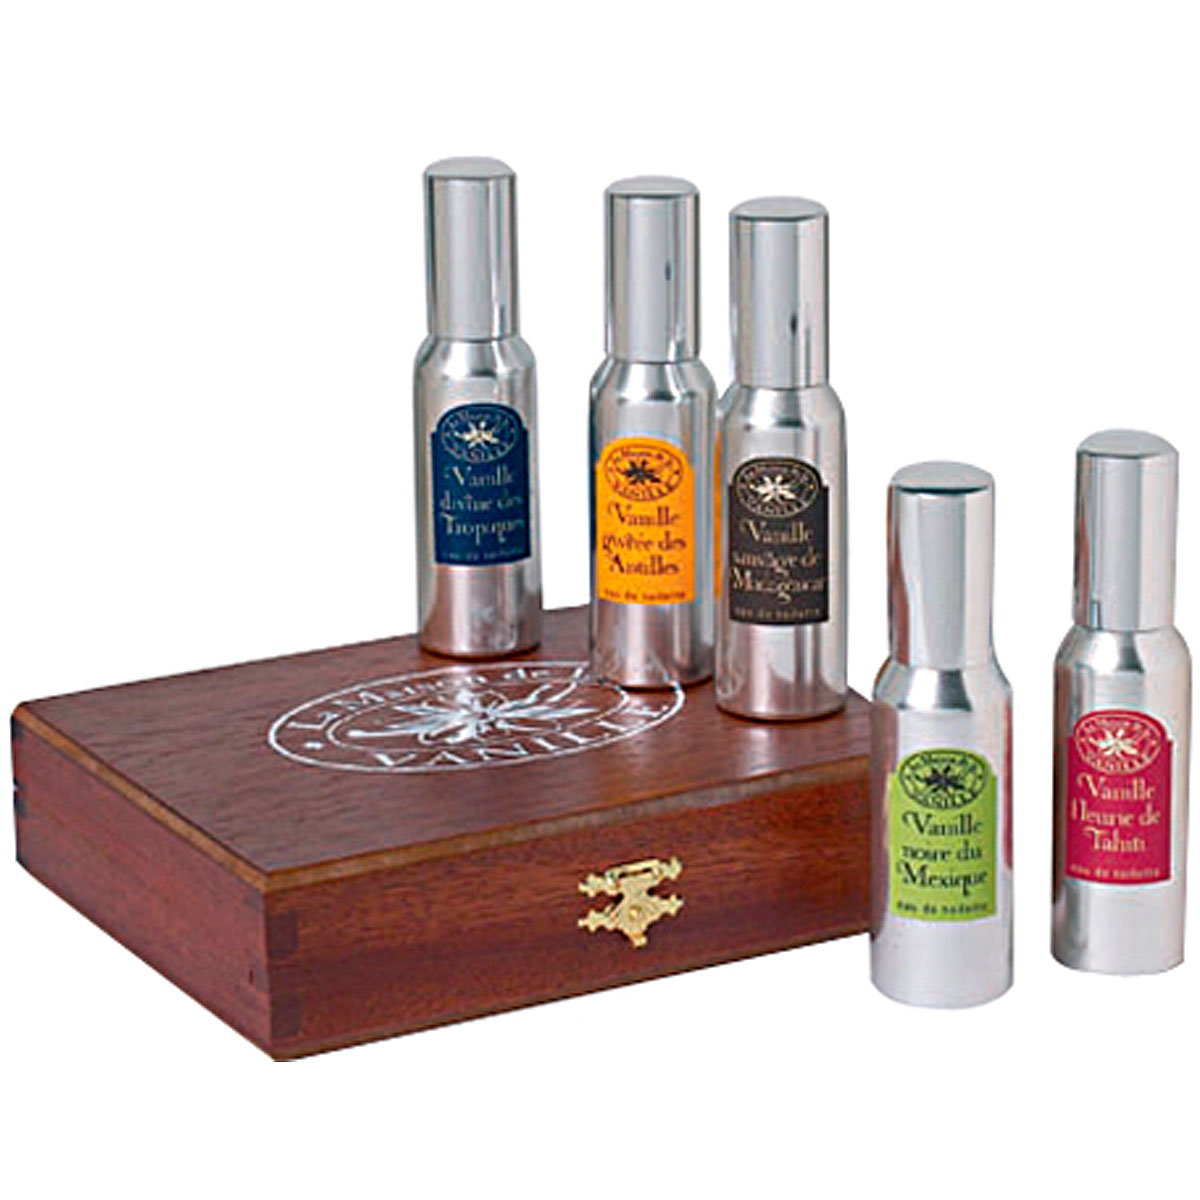 La Maison de la Vanille Fragrances for Women On Sale, Vanilles Du Monde - Luxury Wooden Coffret - 5 X 30 Ml, 2019, 5 x 30 ml